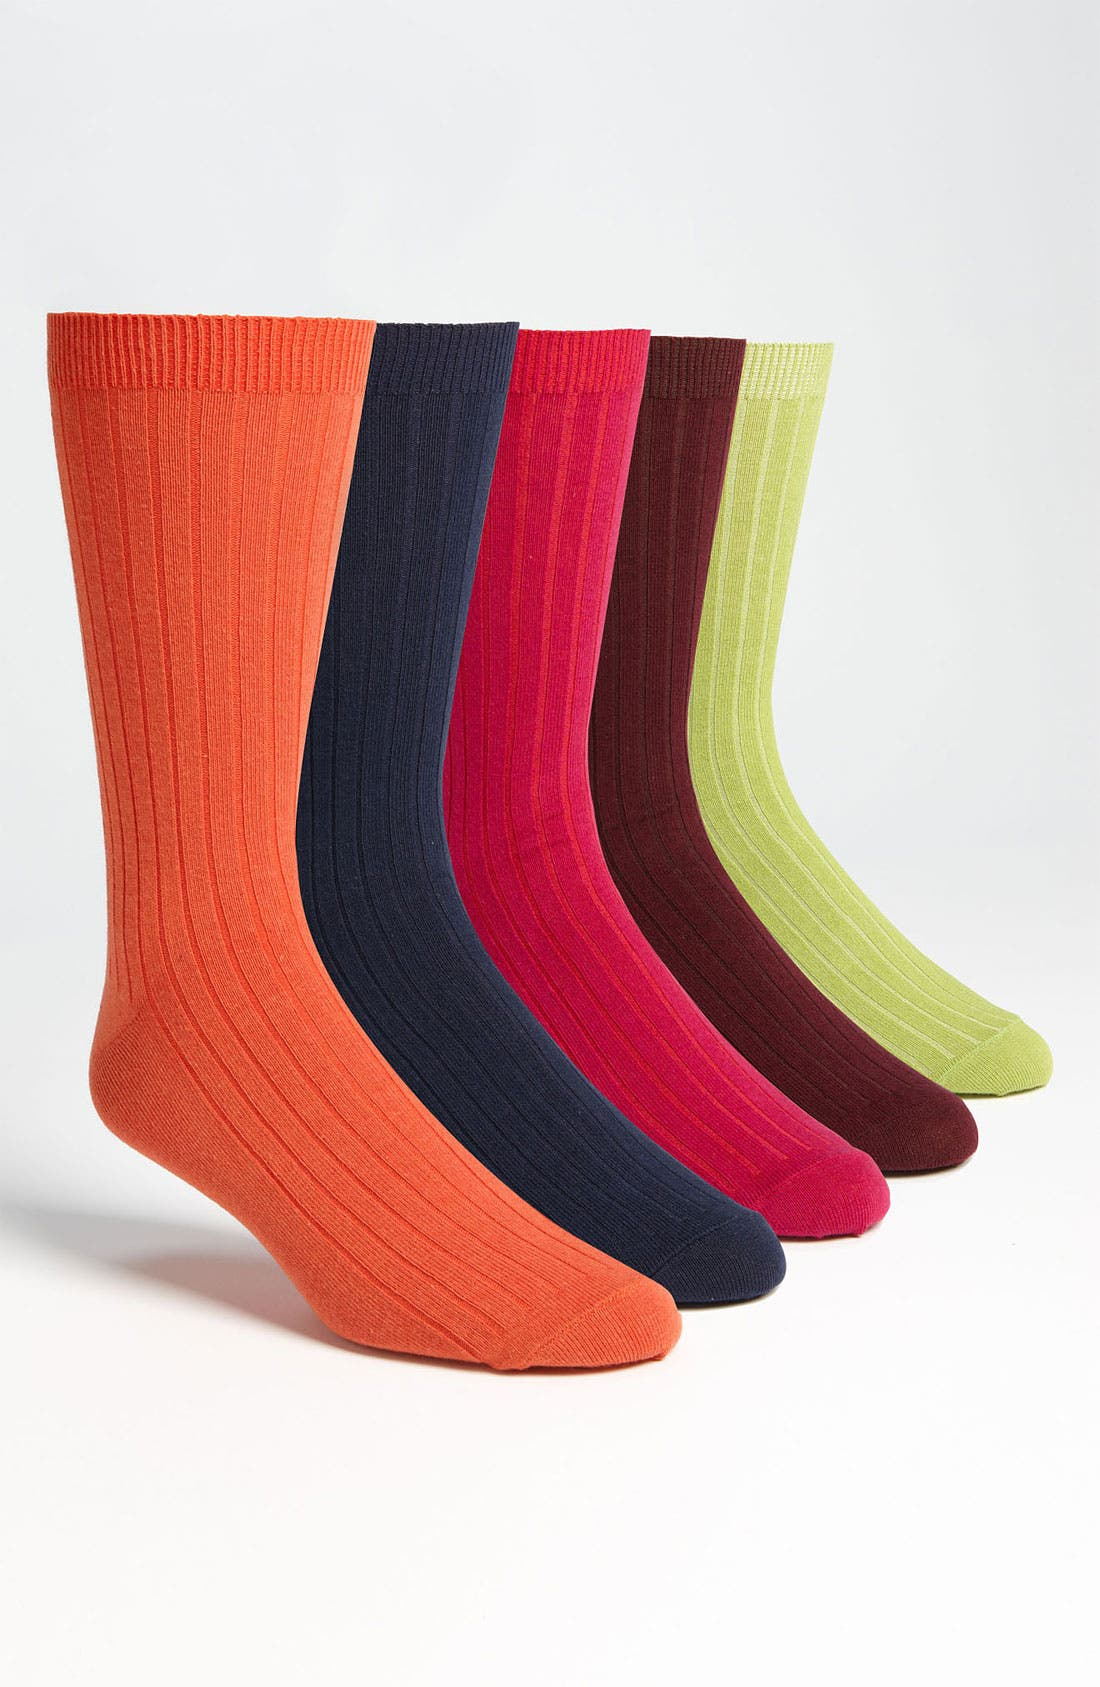 Alternate Image 1 Selected - Topman 'Hero Workwear' Ribbed Socks (5-Pack)